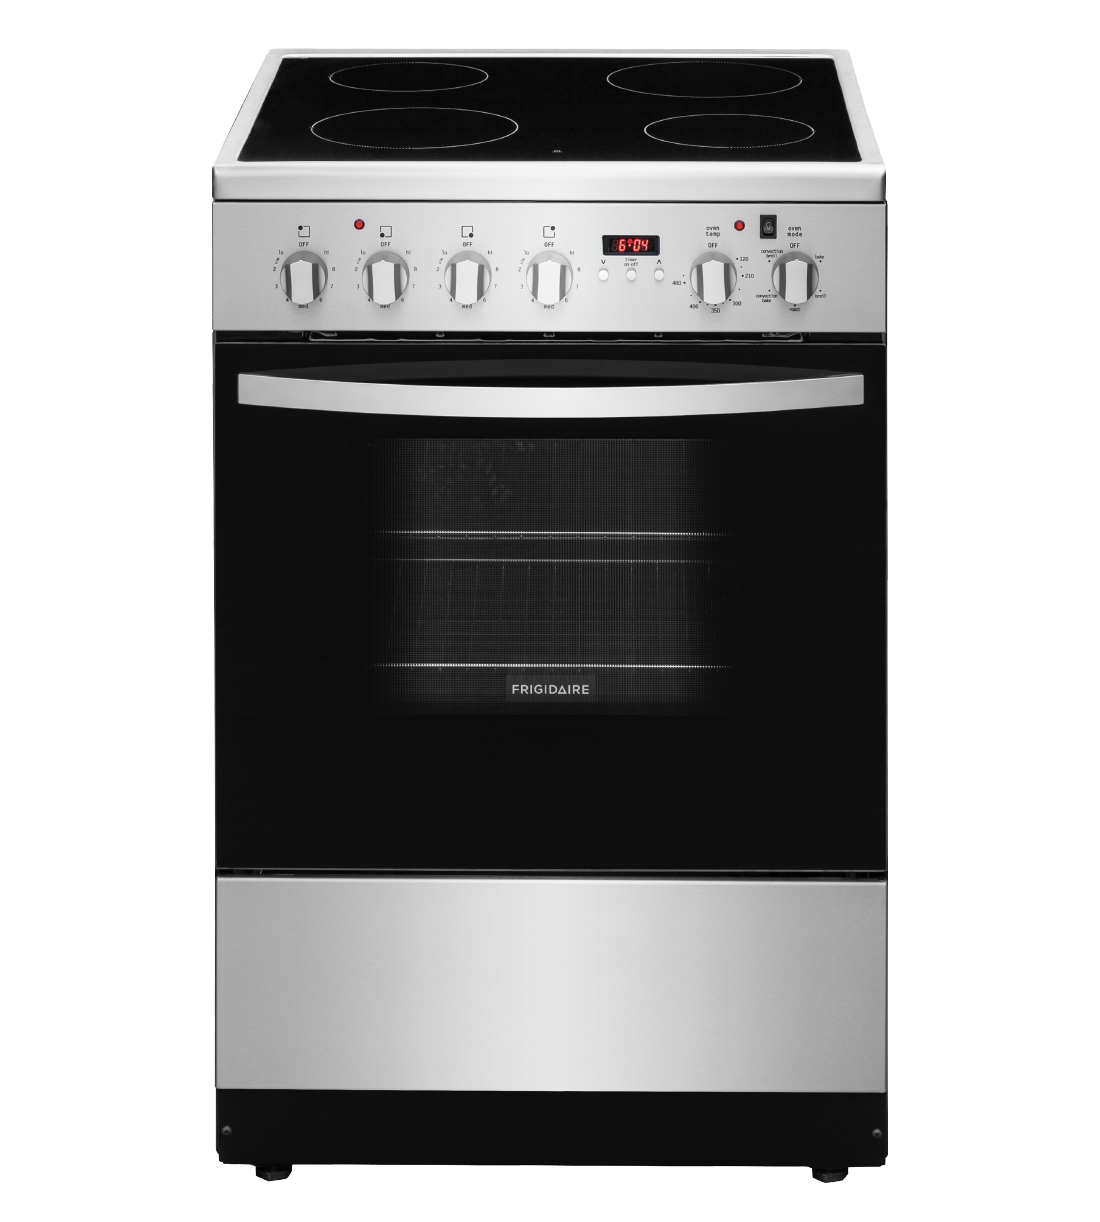 Frigidaire Range in Stainless Steel color showcased by Corbeil Electro Store